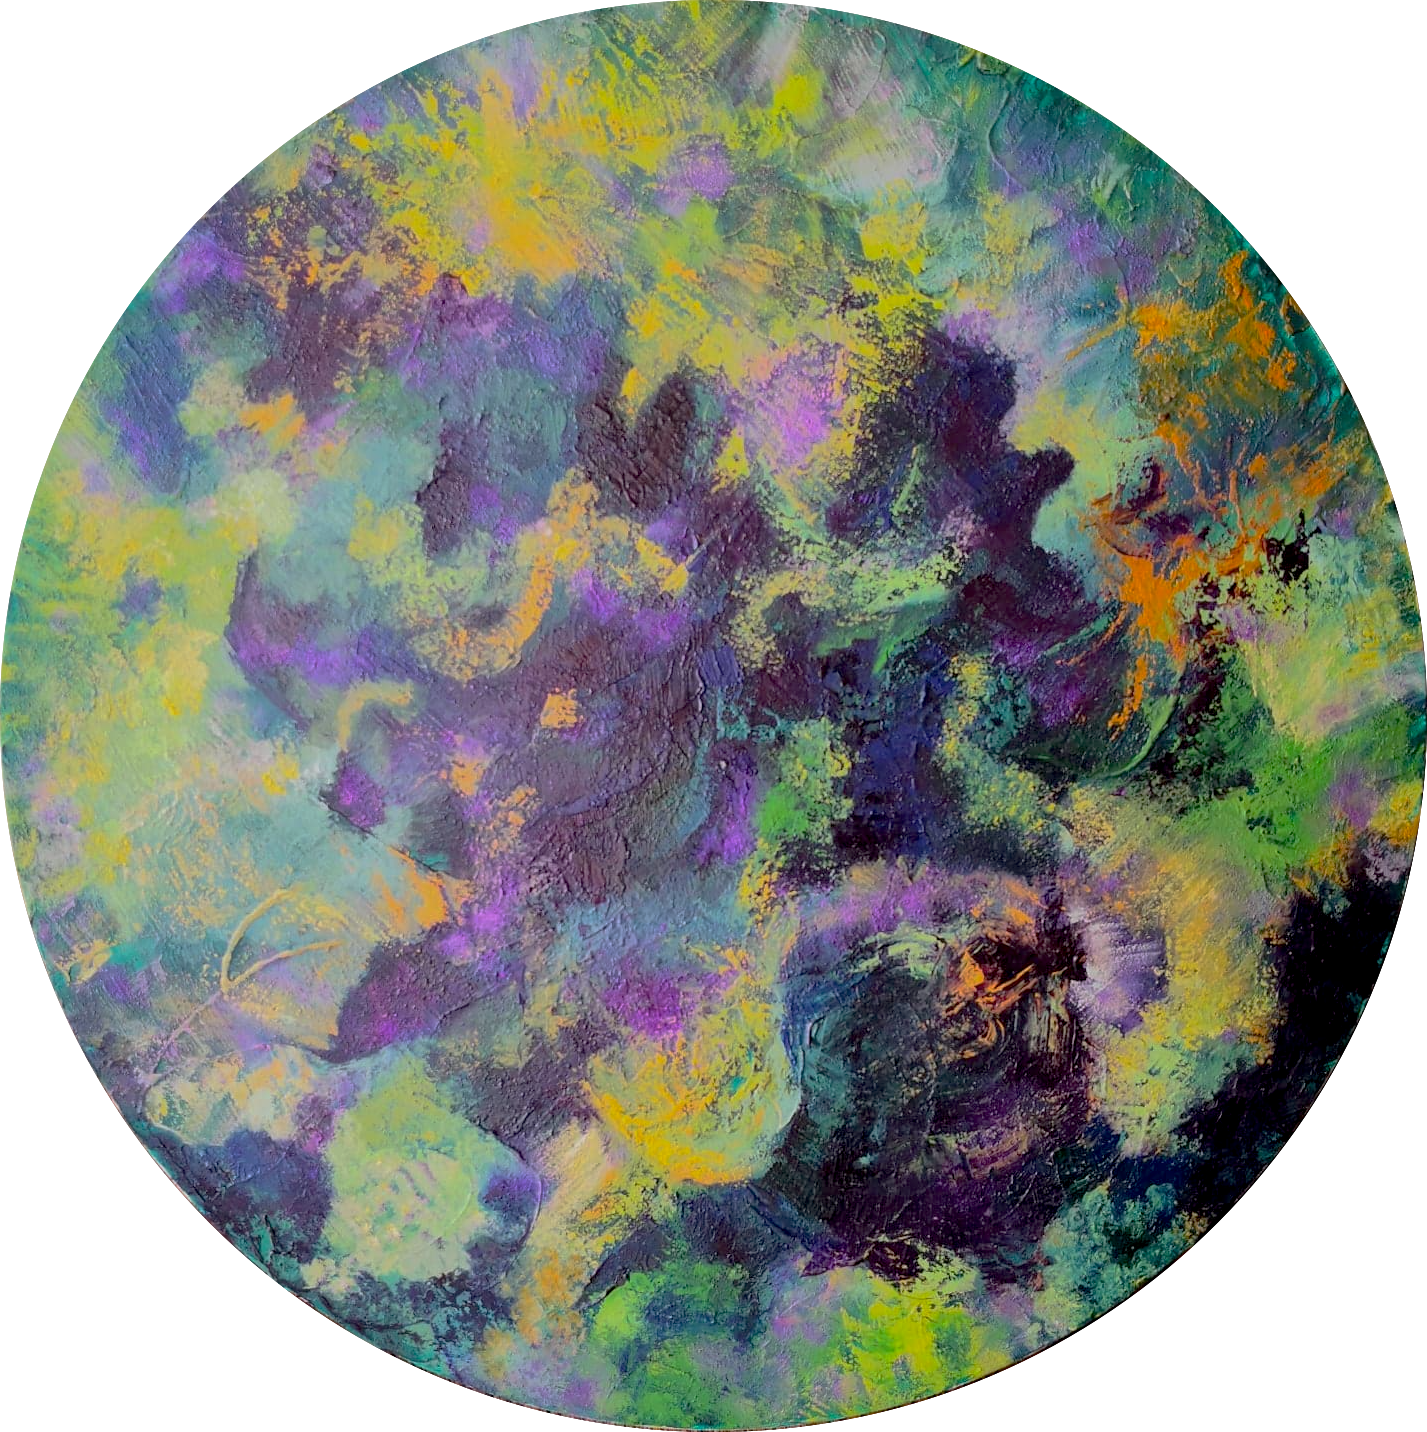 Heather M. Johnson, Shamaness, Acrylic on canvas, 20 inches diameter, $300.png